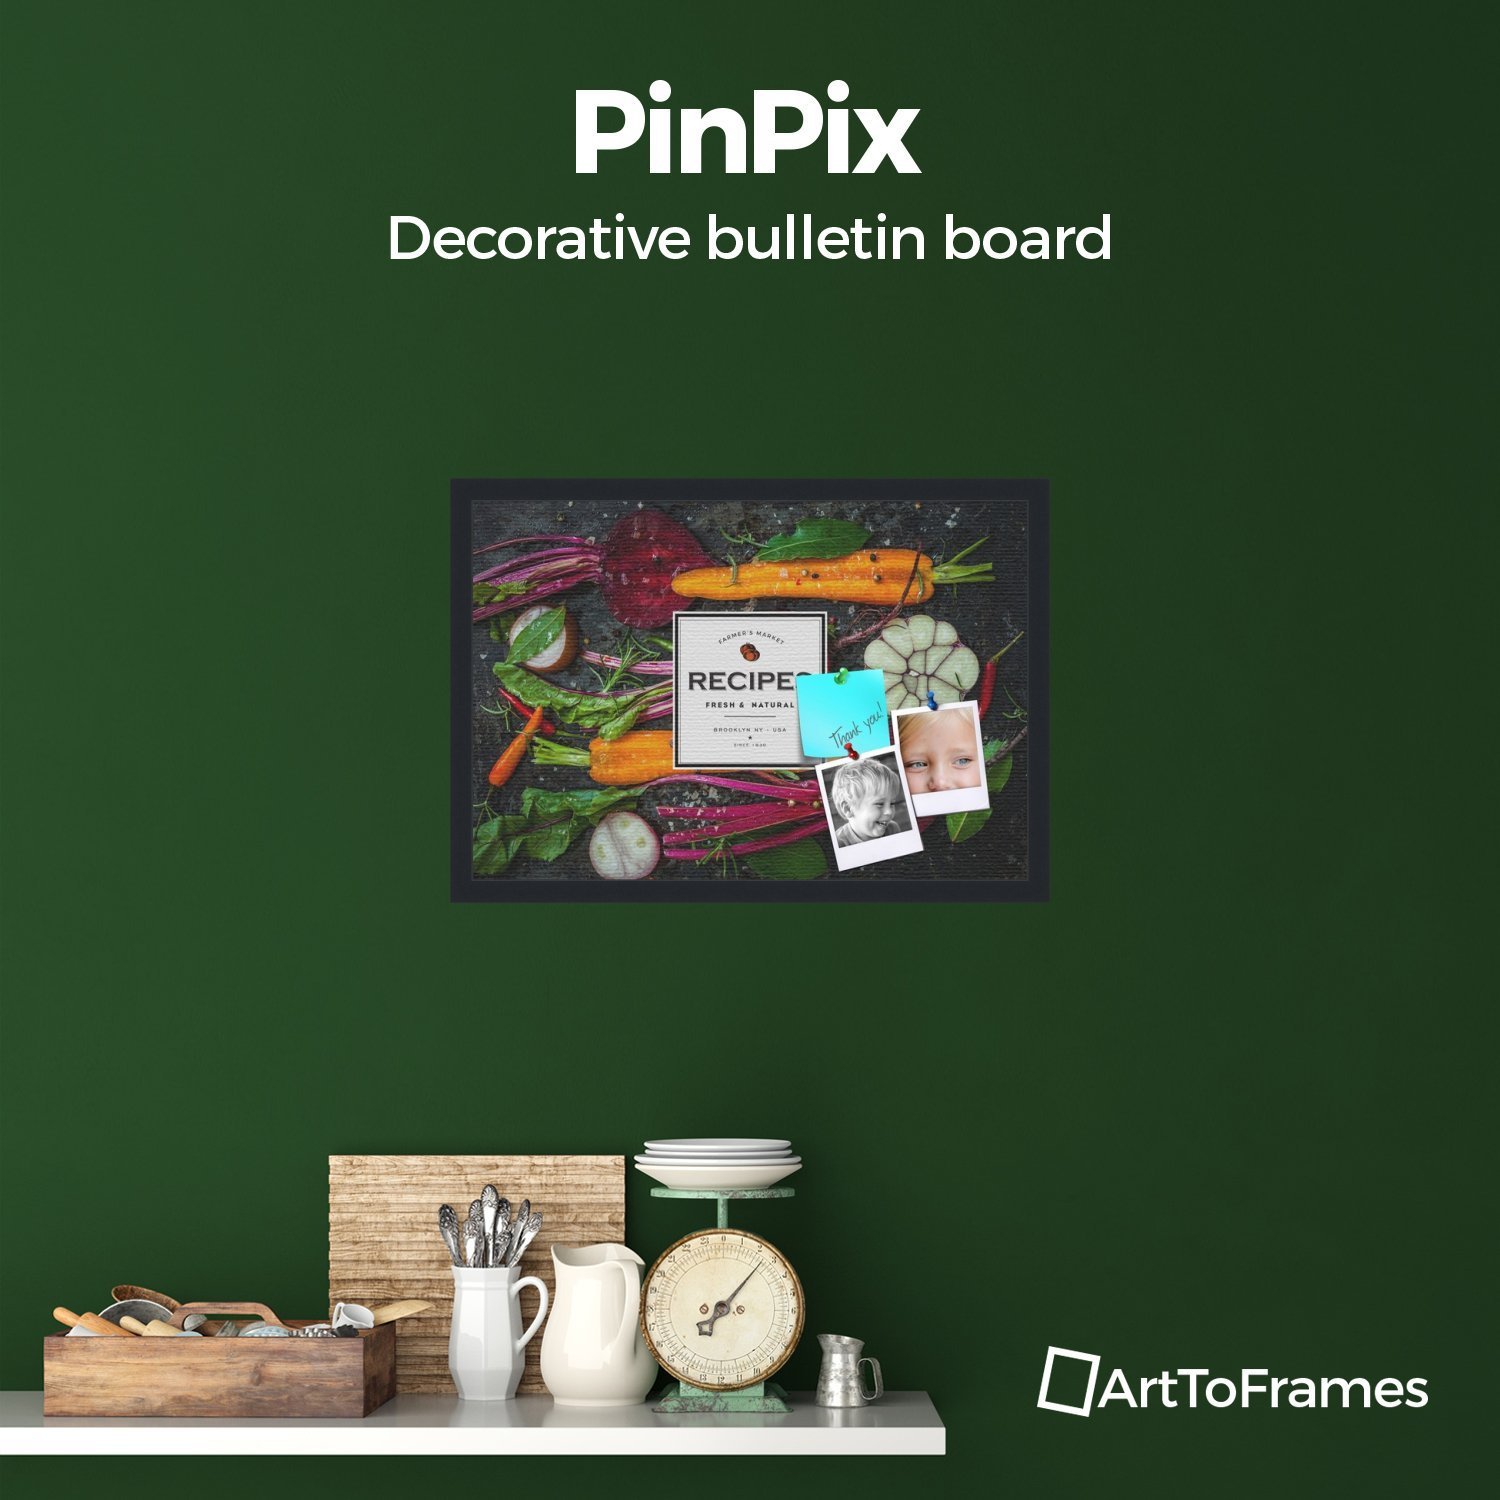 PinPix decorative pin cork bulletin board made from canvas, Recipe Board with Root Vegetables 24x16 Inches (Completed Size) and framed in Satin Black (PinPix-Group-36) ArtToFrames PinPix-1361-24x16_FRBW26079